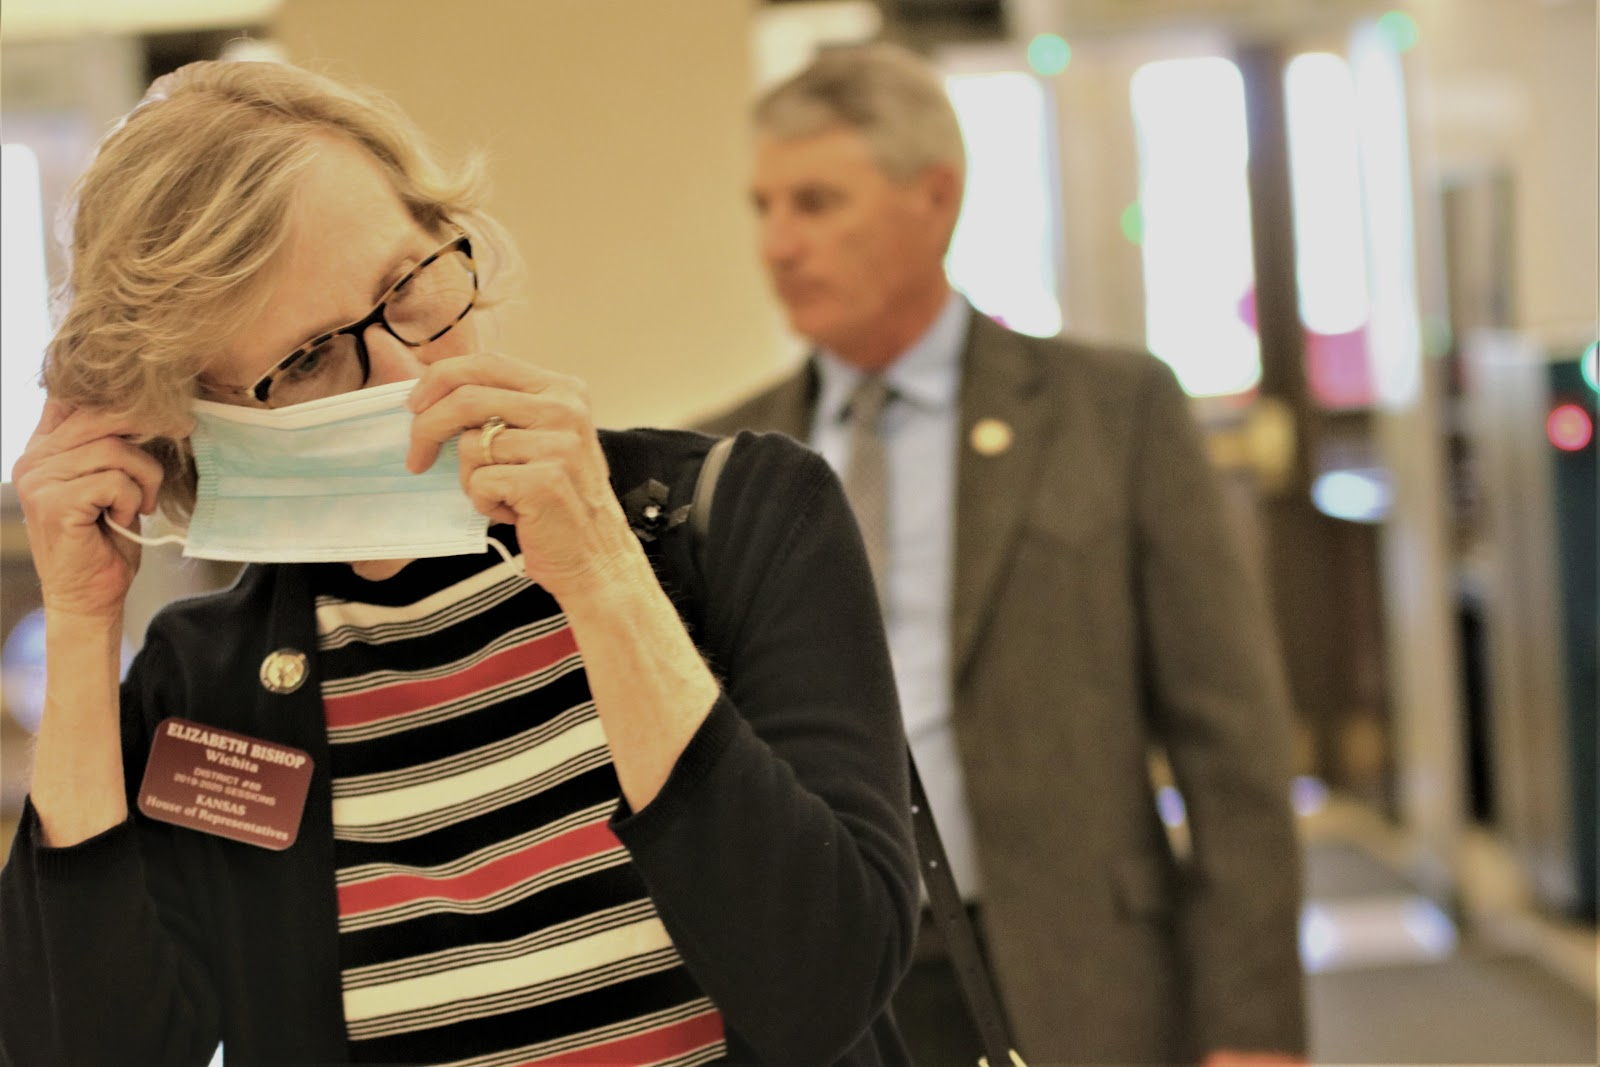 Wichita Democratic state Rep. Elizabeth Bishop puts on a mask as she enters the Statehouse on Thursday, the second day of the special session. (Photo by Jim McLean, Kansas News Service)